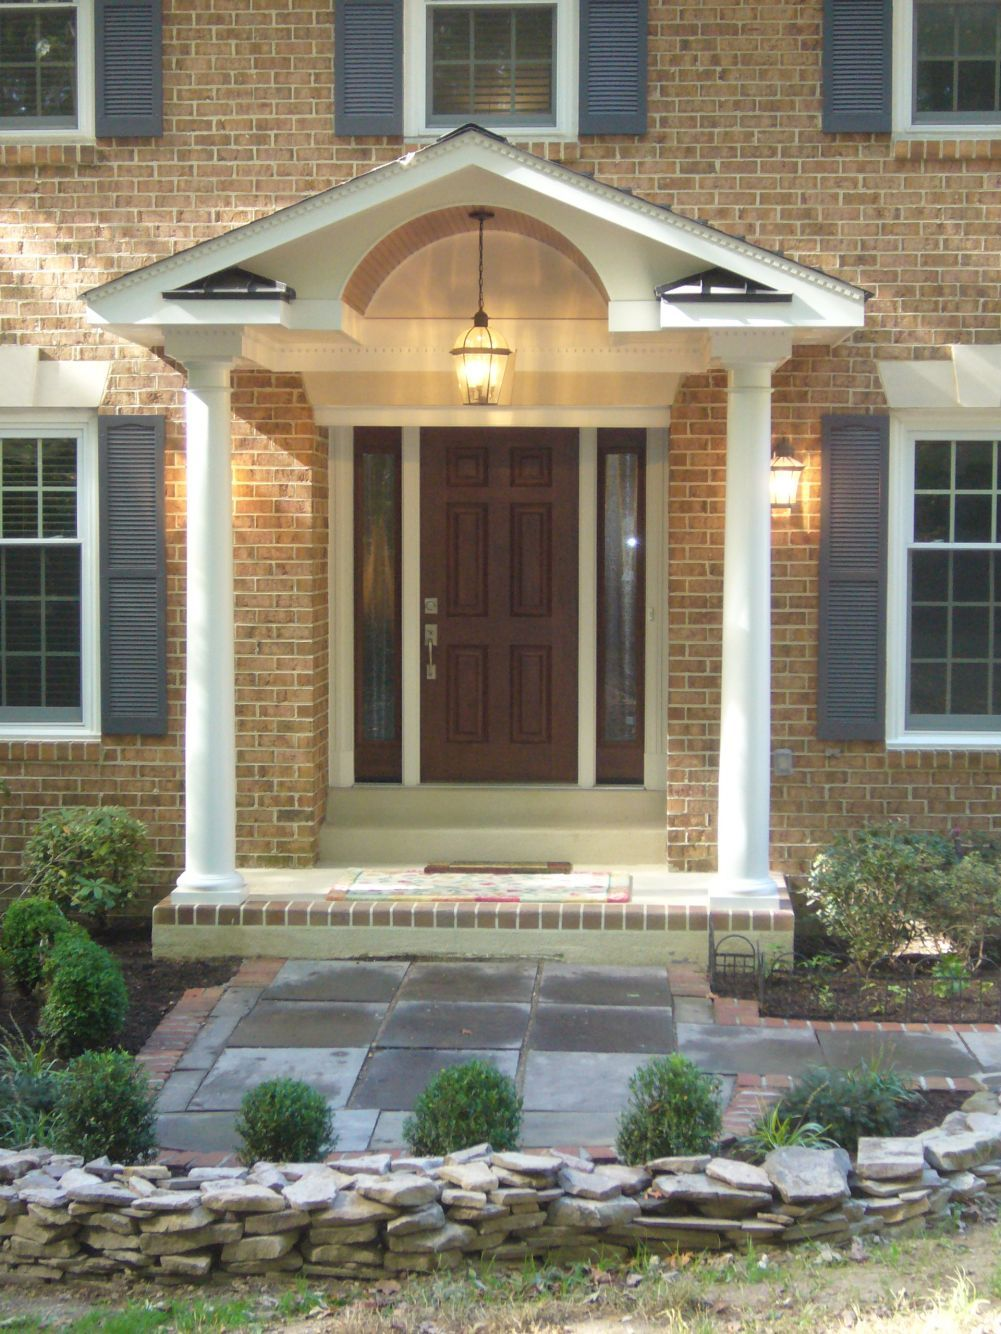 Porch Design Ideas front patio designs interior gorgeous front porch portico design ideas with half brick Find This Pin And More On Remodeling Ideas